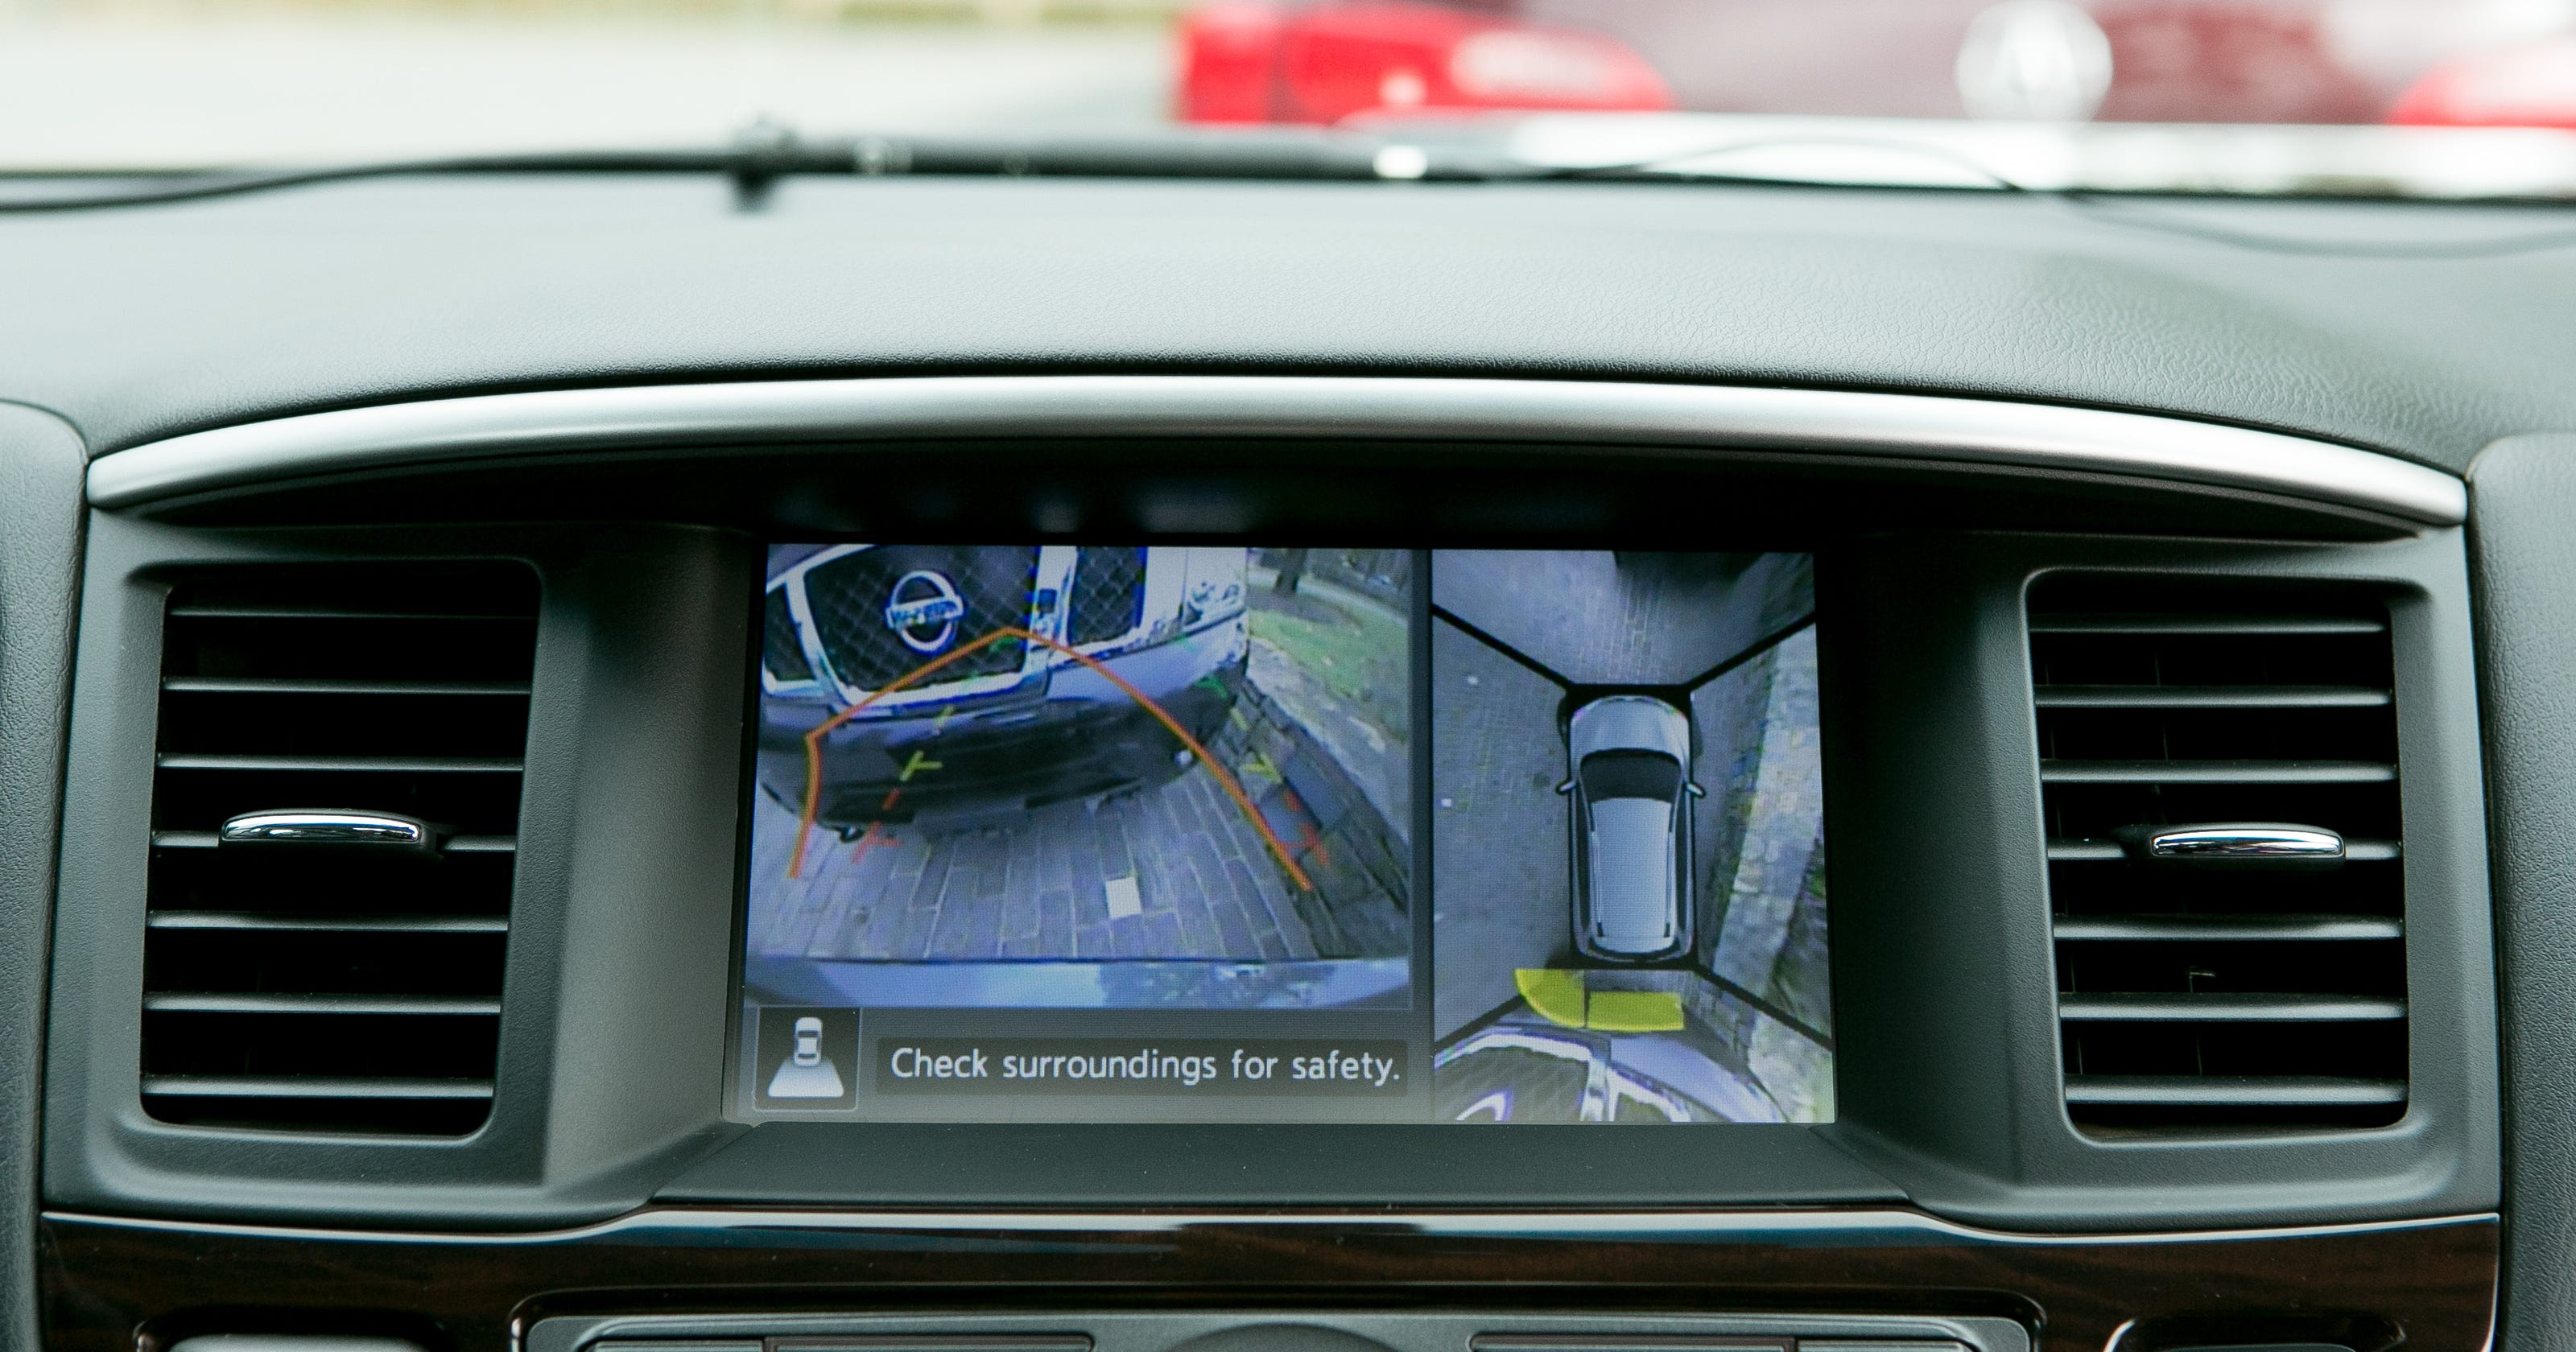 Backup cameras can now be used in driver's test